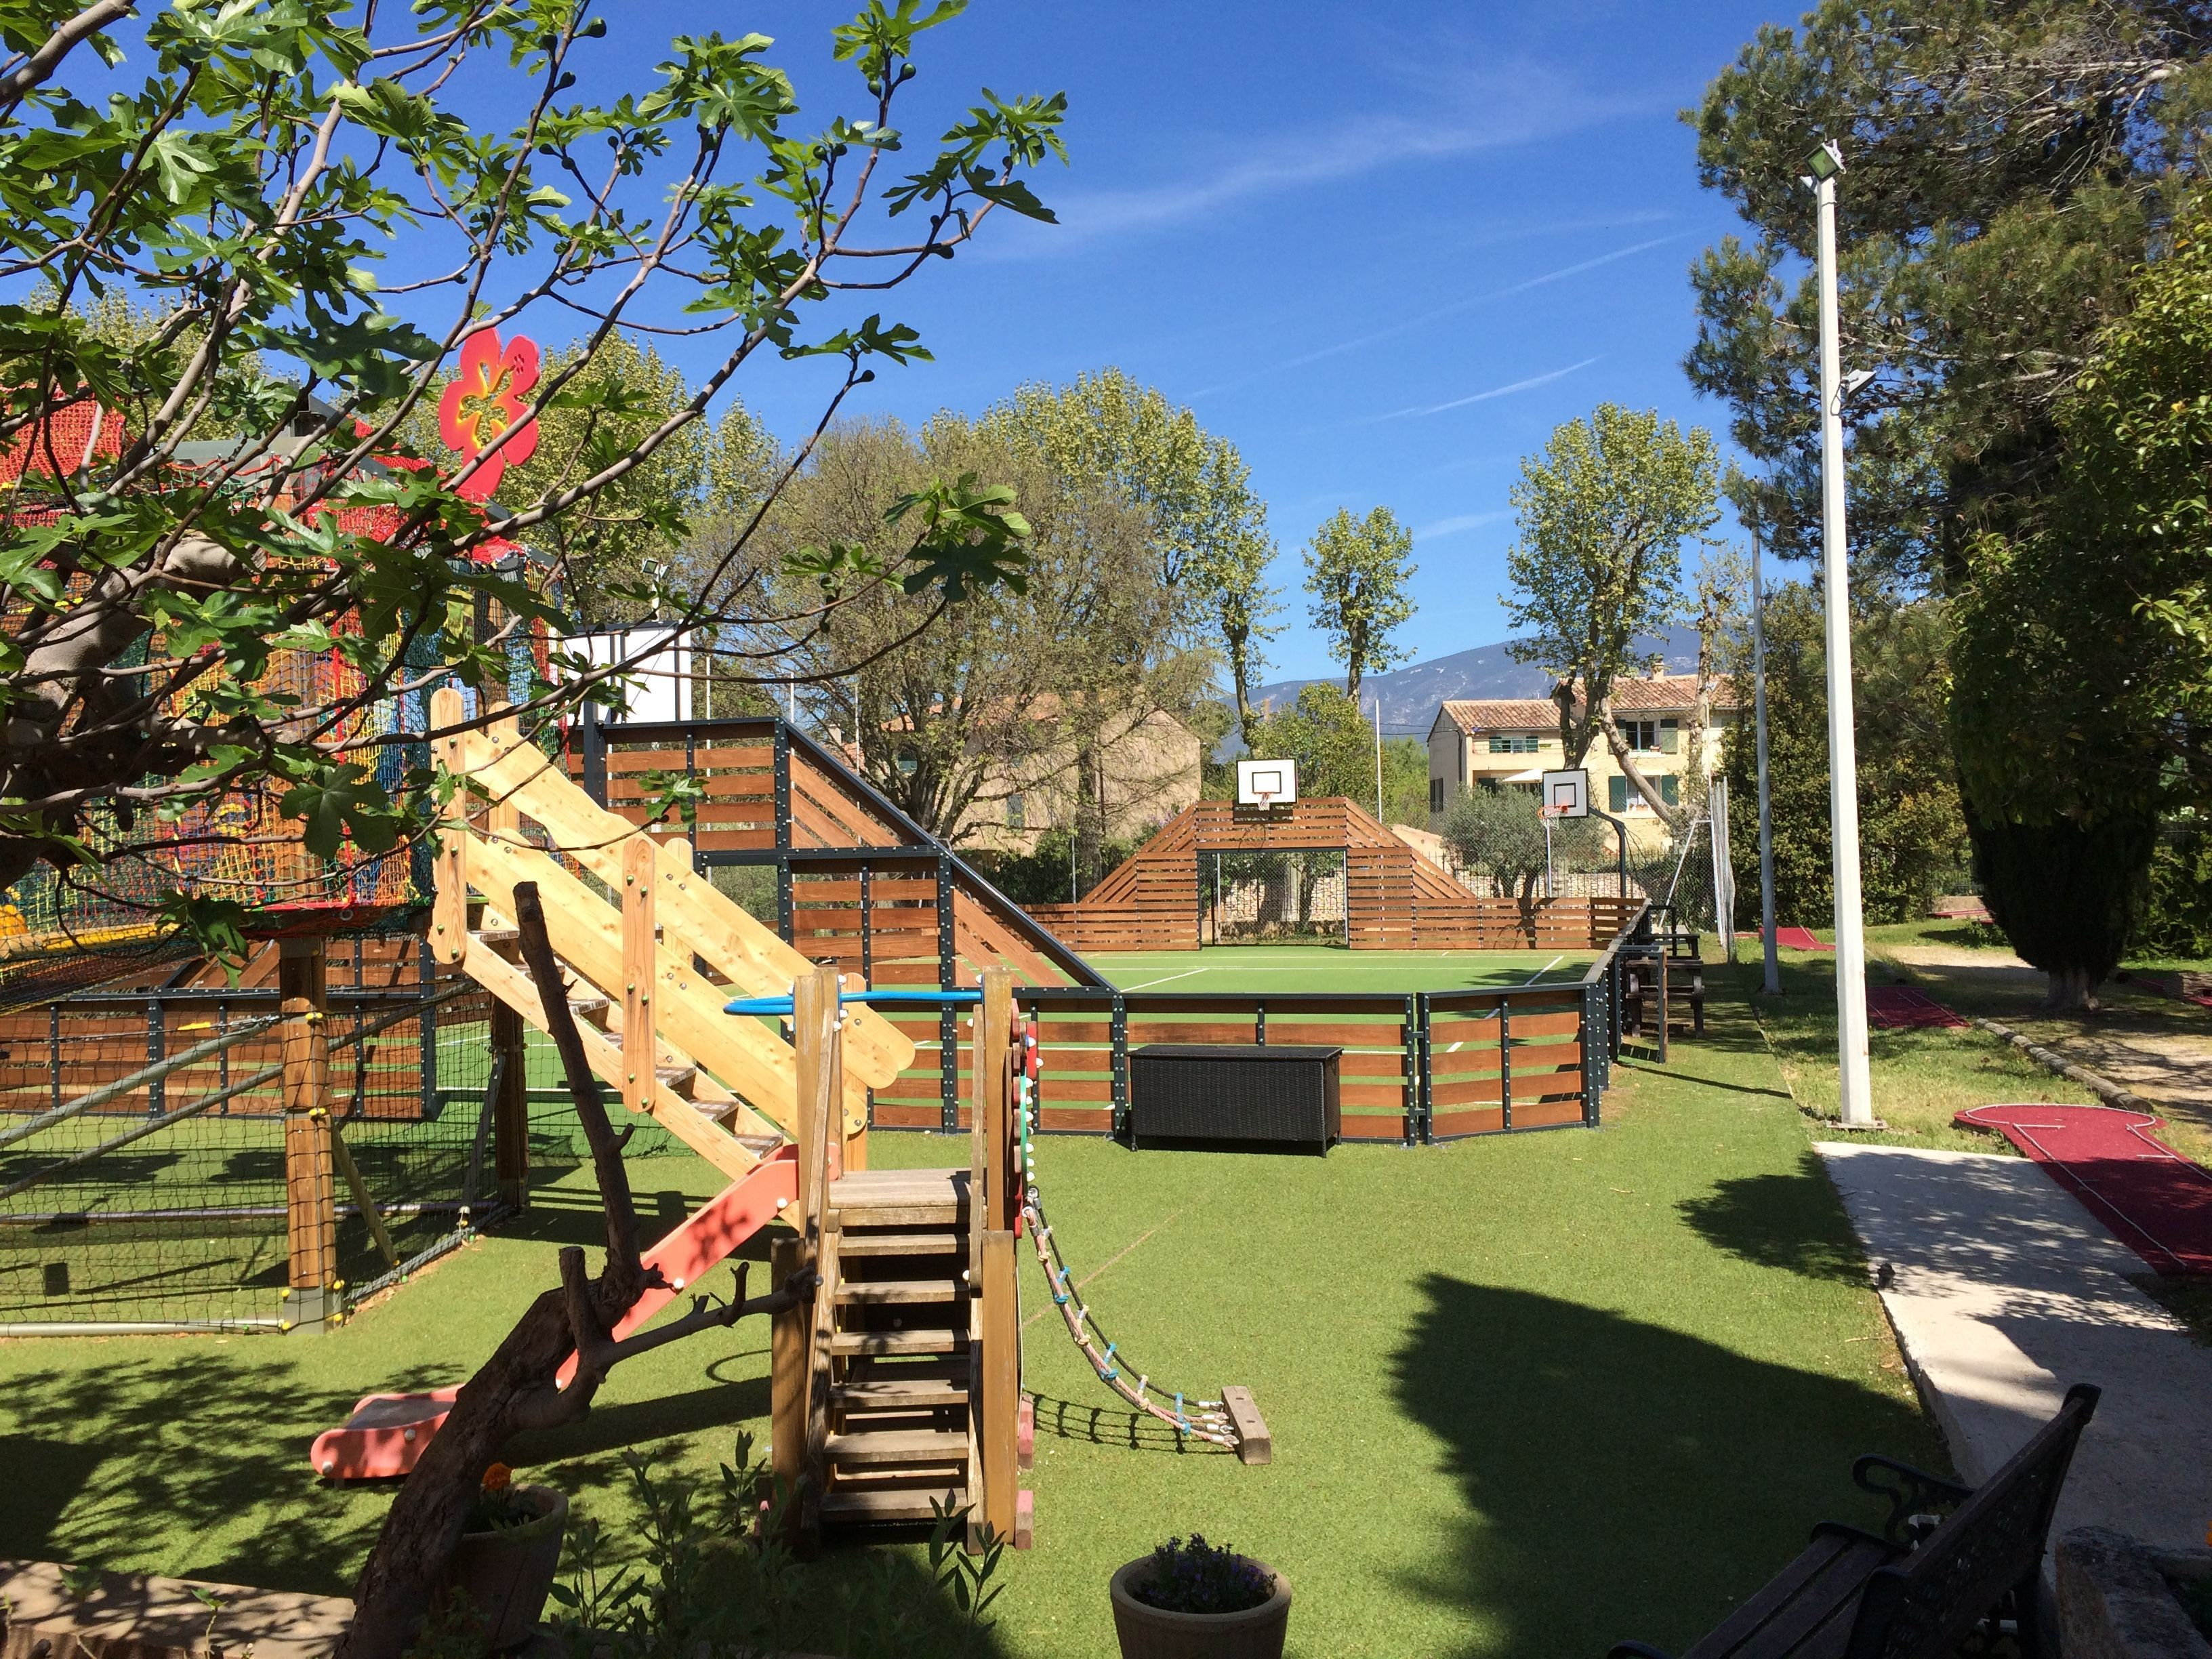 Zip line, games playgrounds and sports area